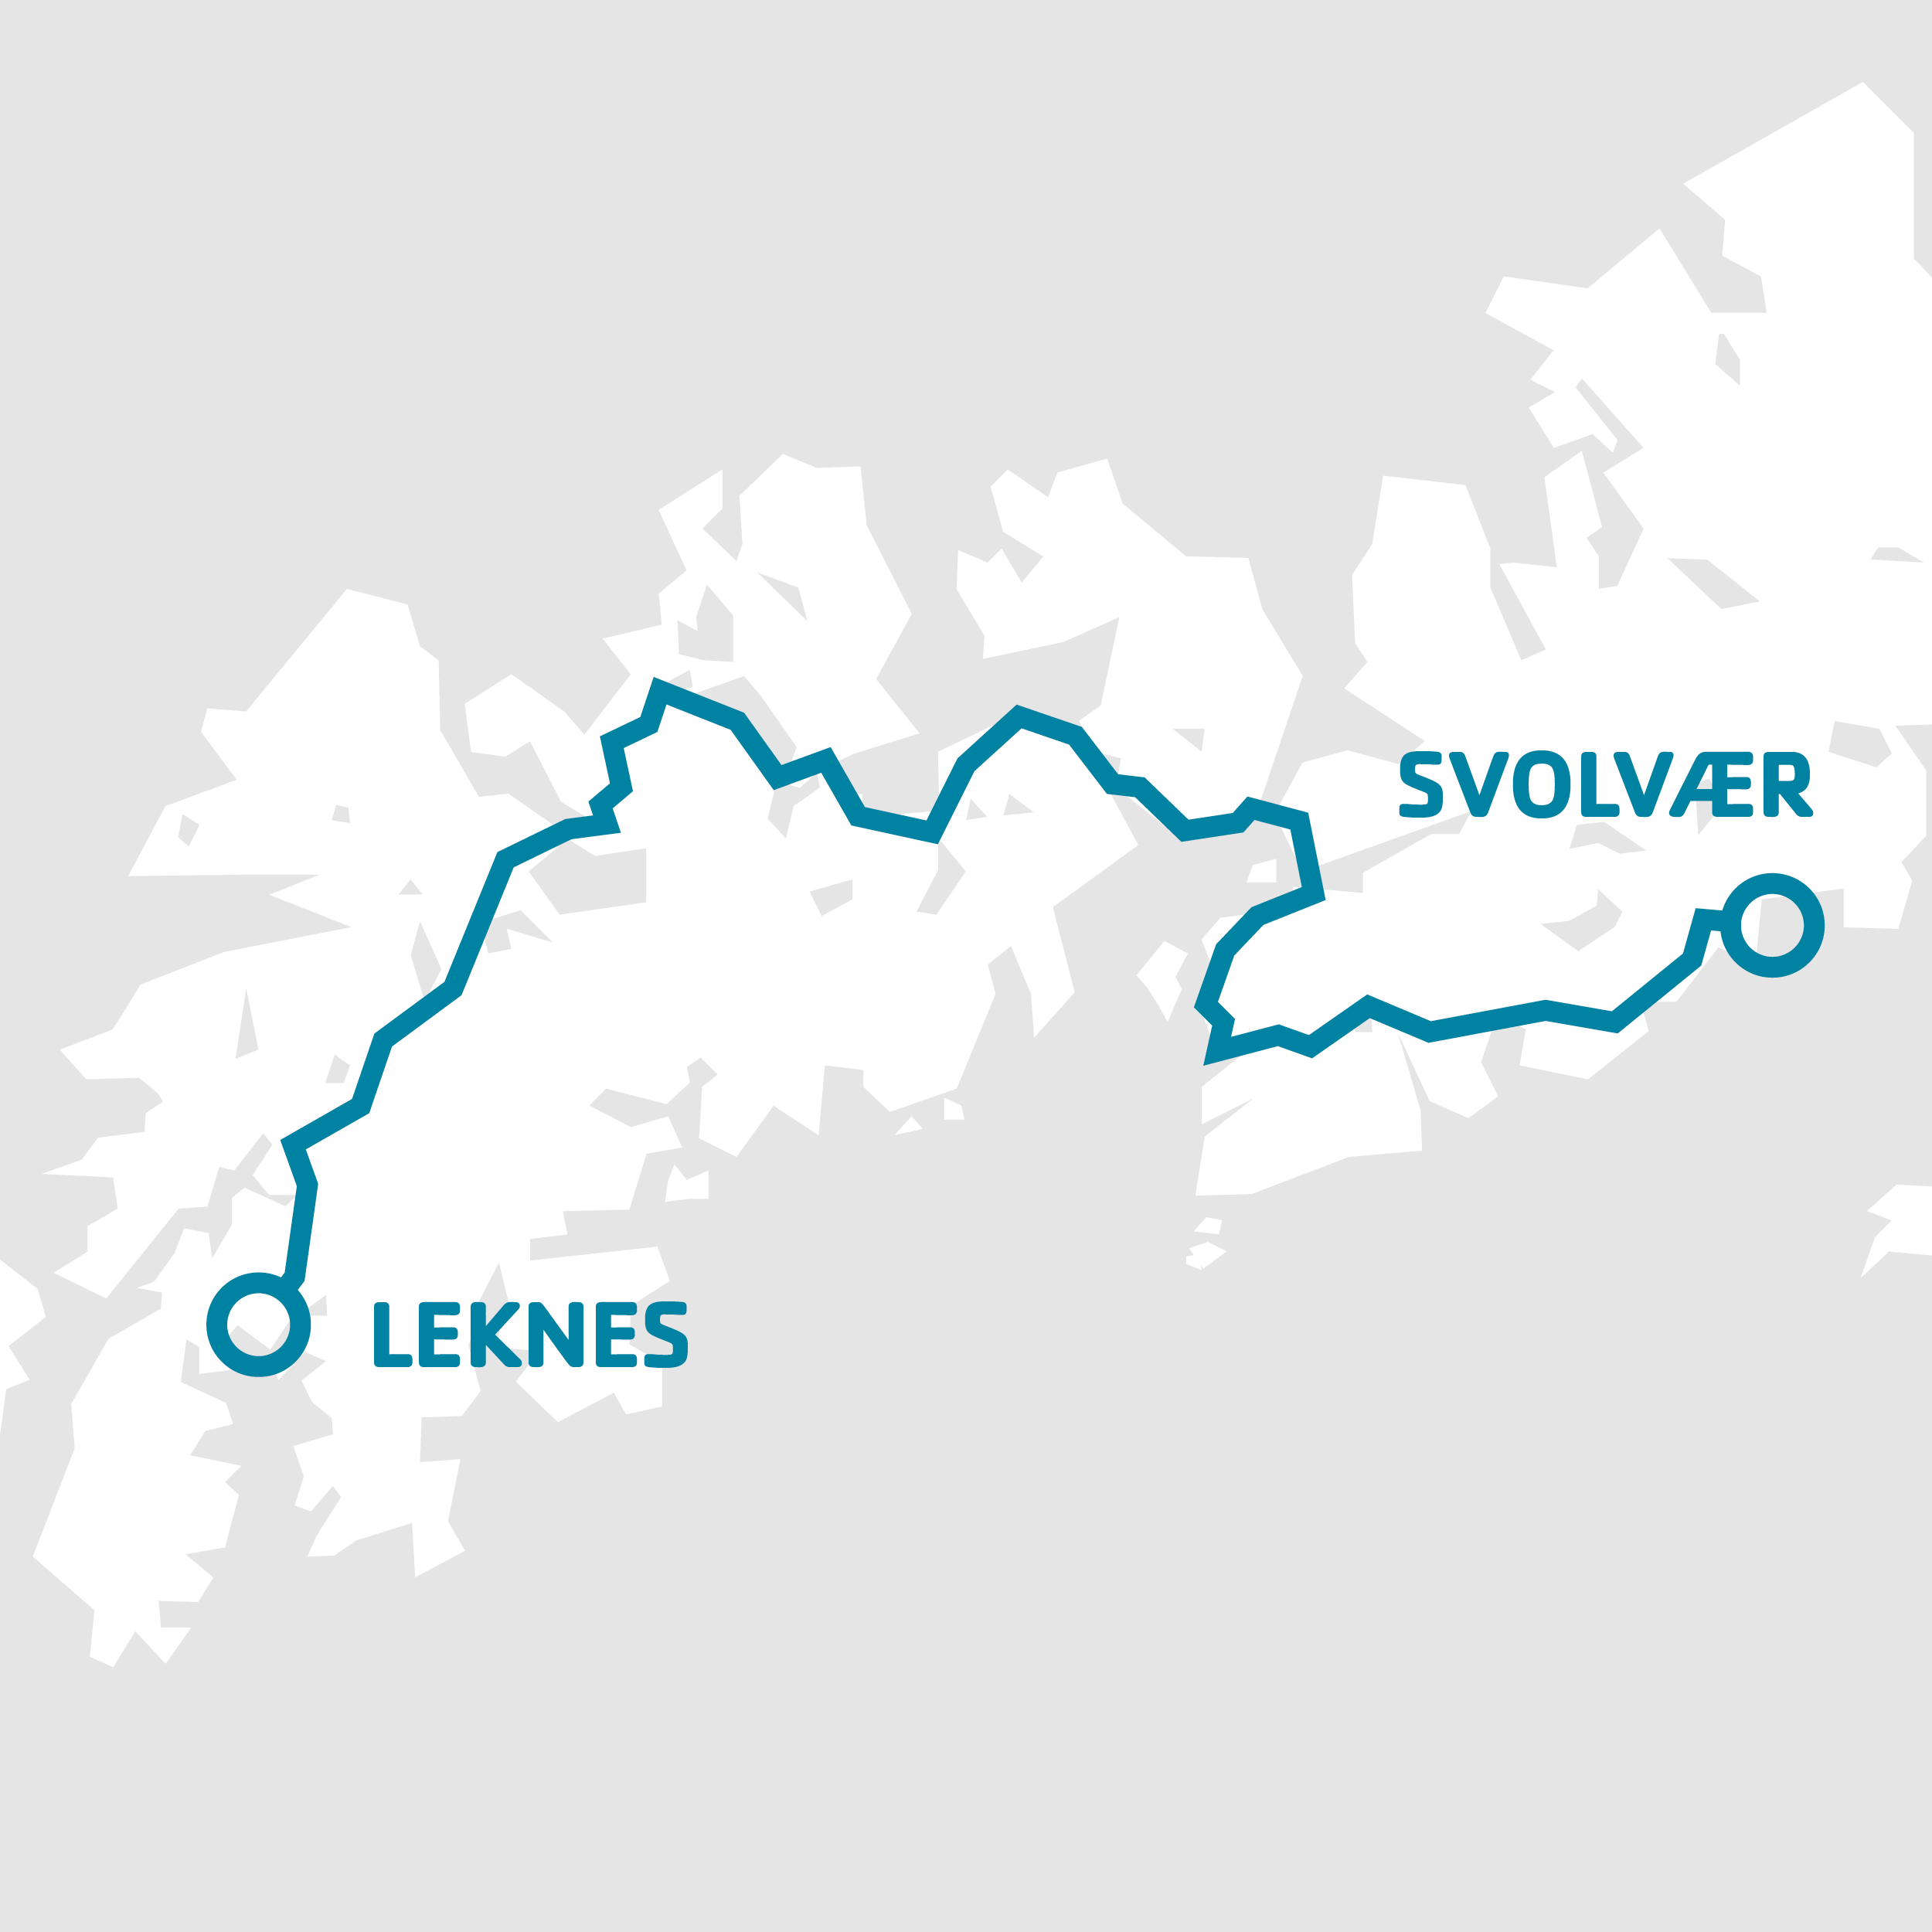 Routes: 18-741   Total journey time: 1 hour 30 minutes   Recommended stops: Leknes, Borg, Kabelvåg and Svolvær.